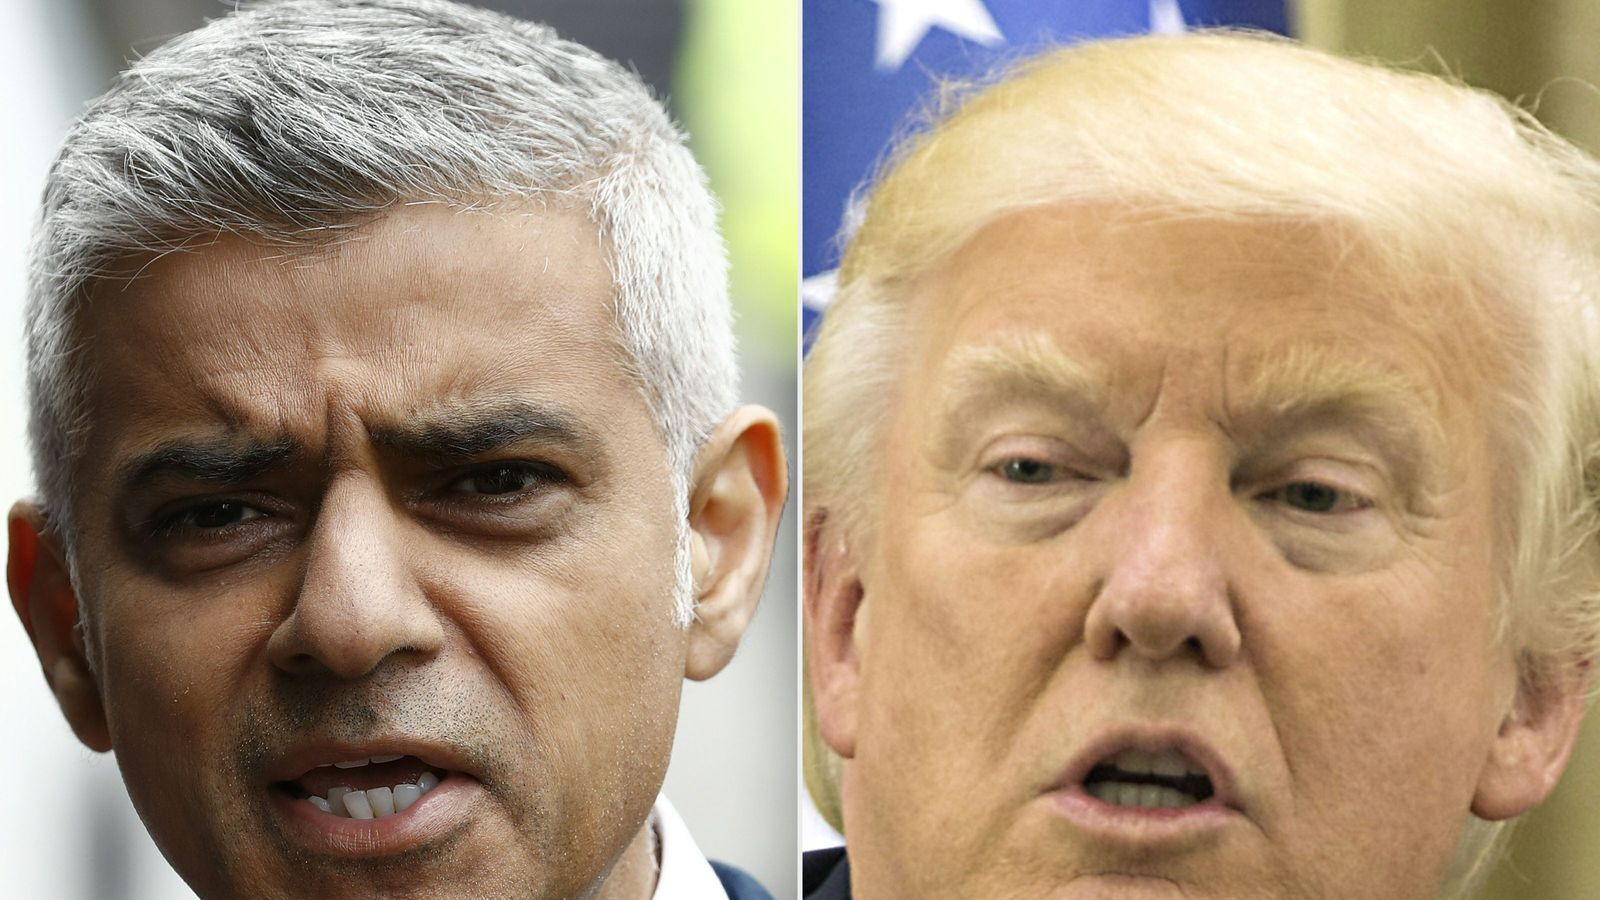 Pathetic excuse: Trump criticises London's 1st Muslim mayor again over attacks